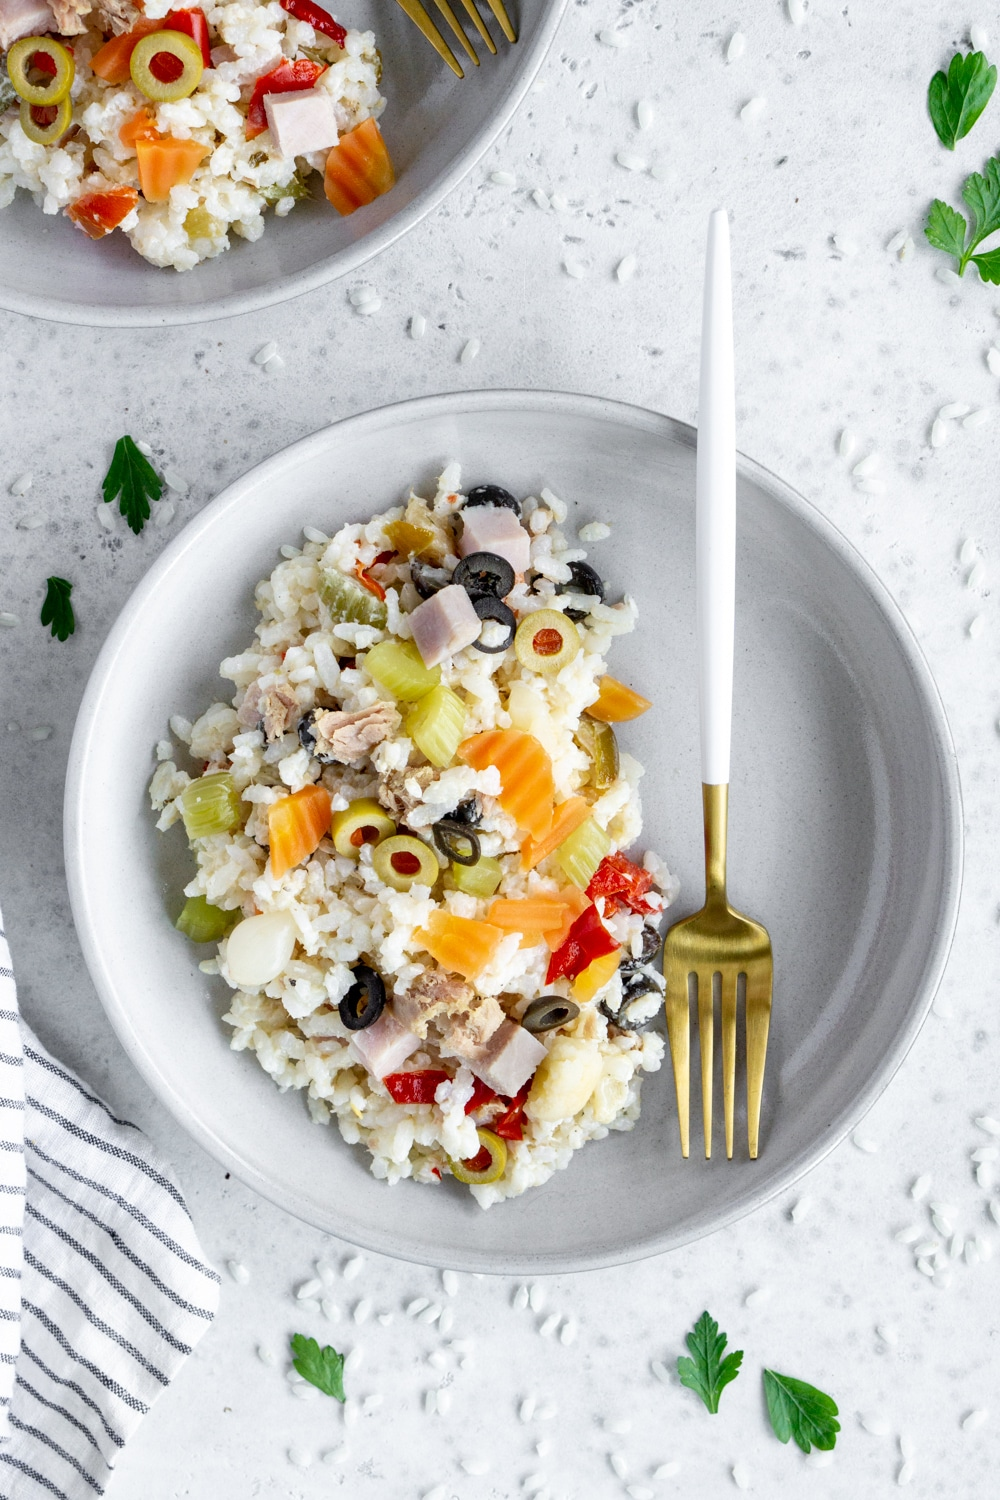 plate of rice salad (insalata di riso) with a fork in the plate